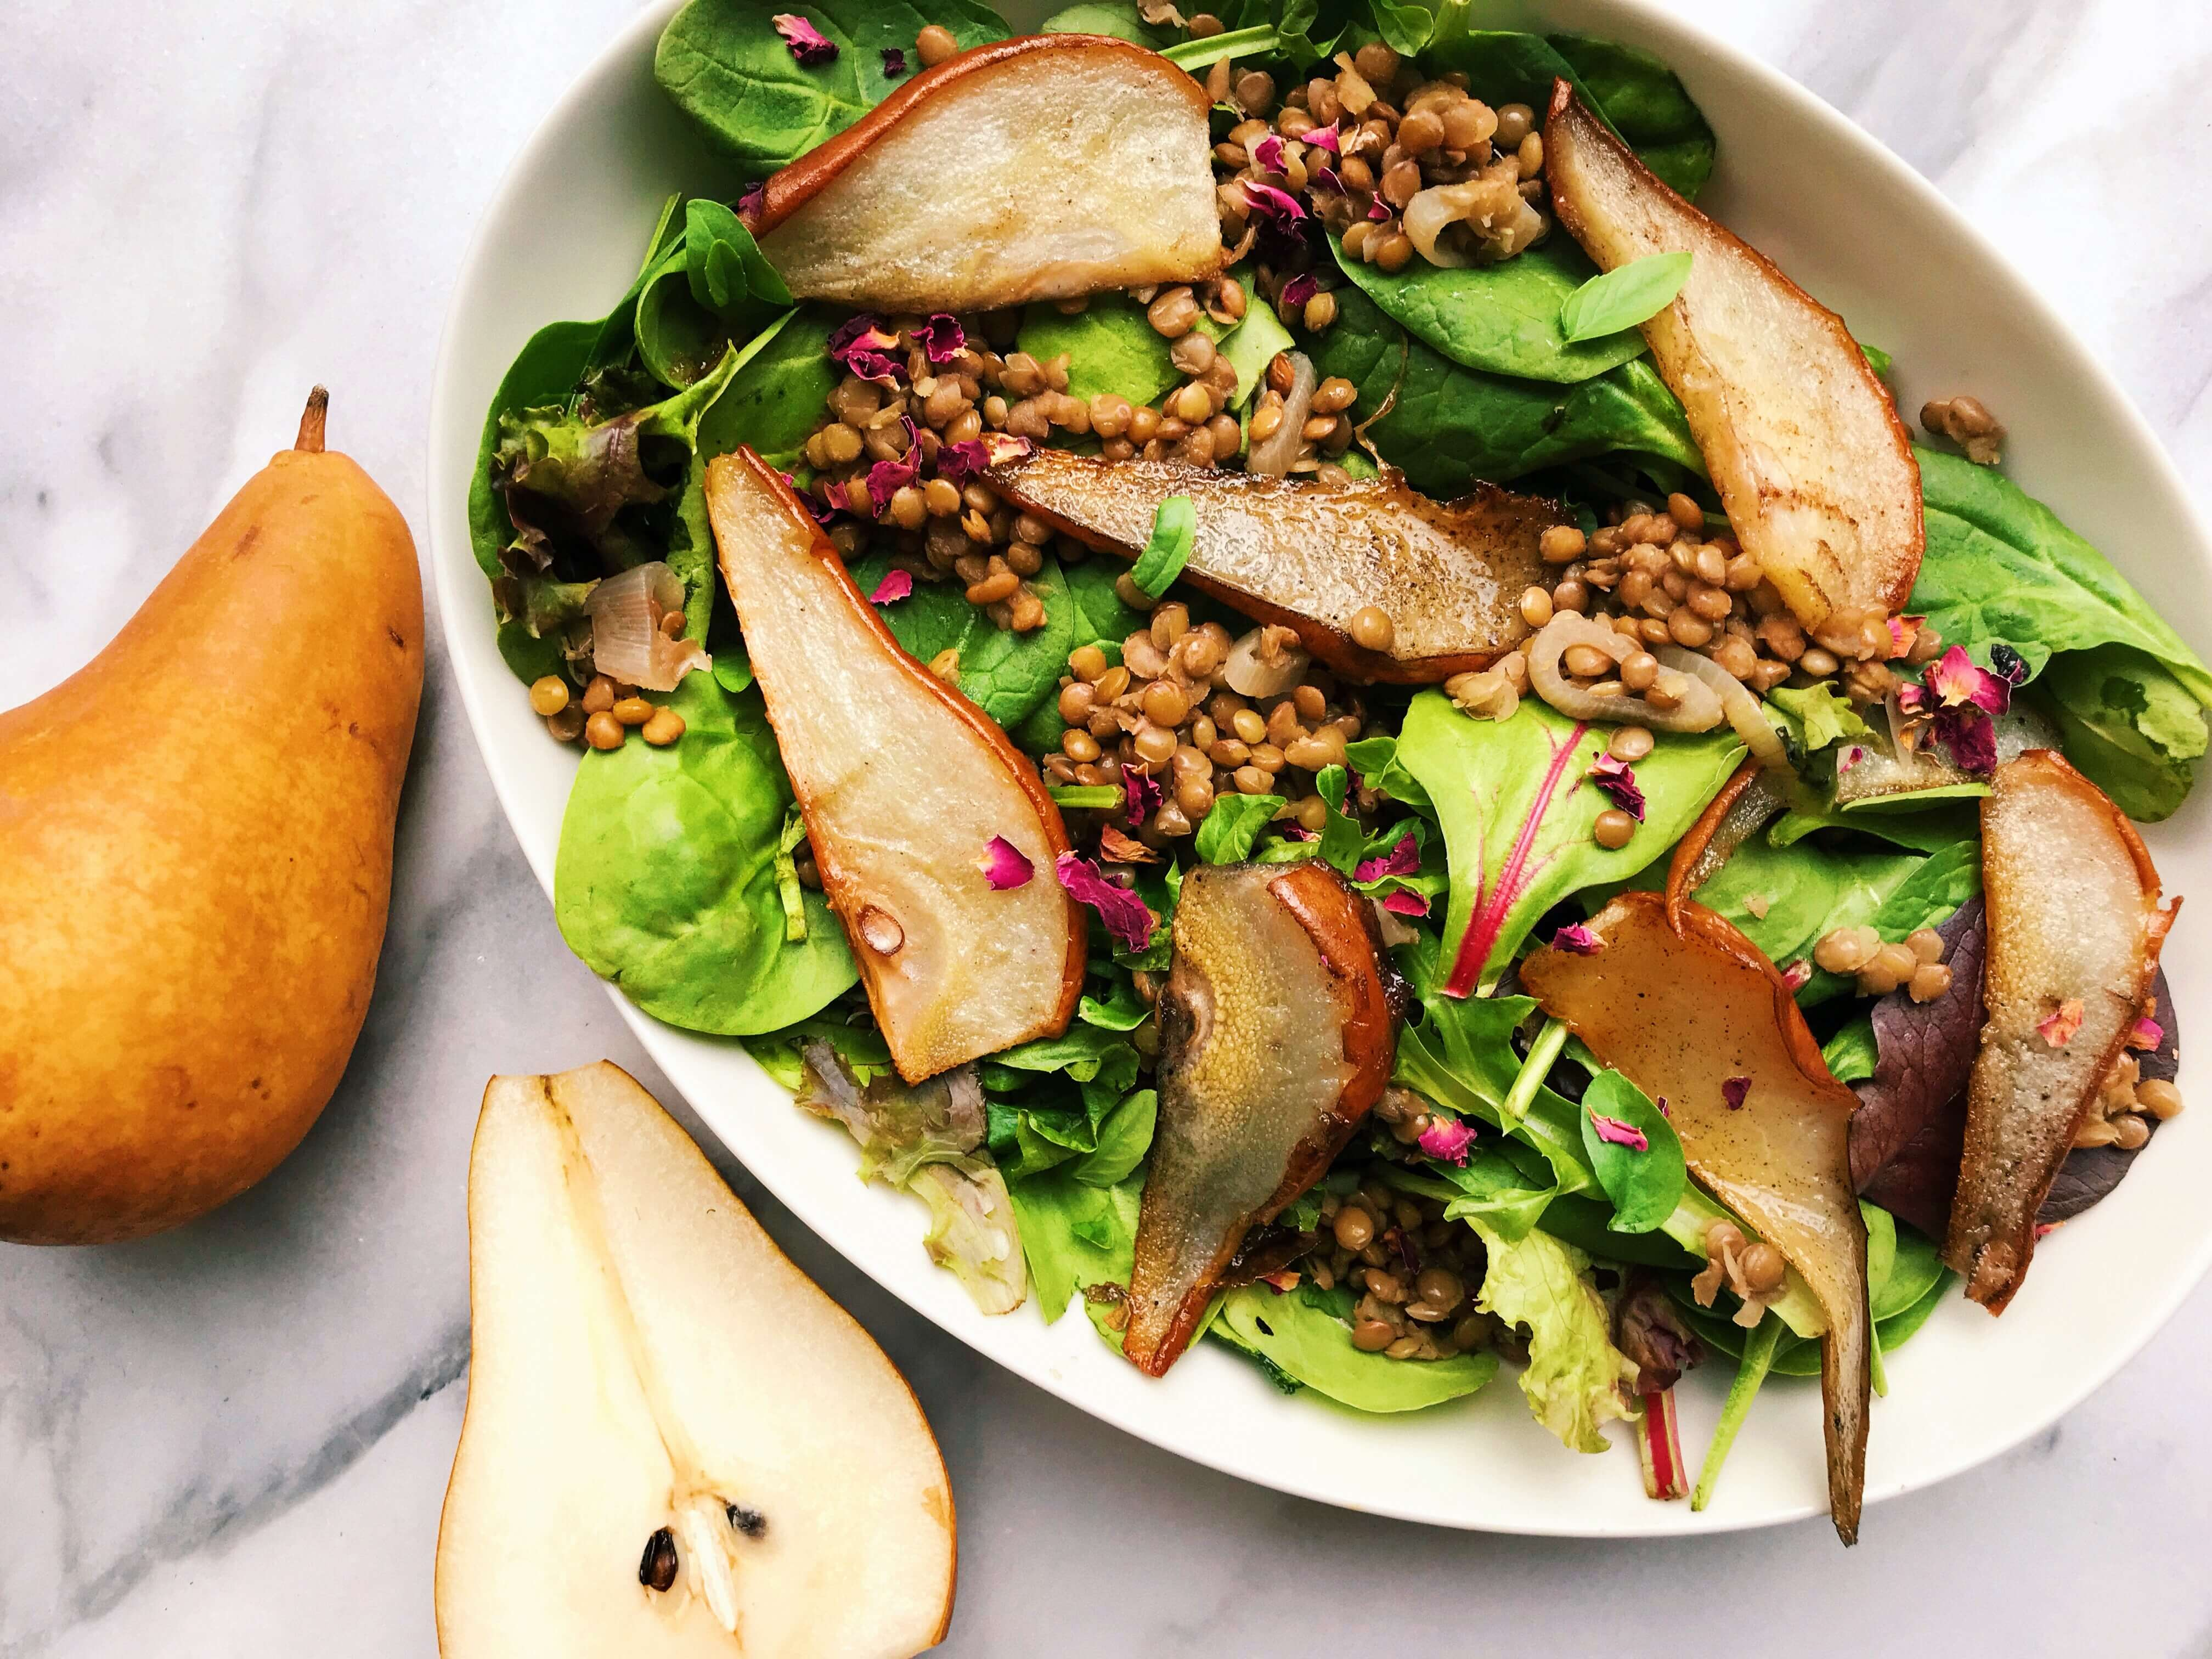 warm-greens-balsamic-lentils-roasted-pears